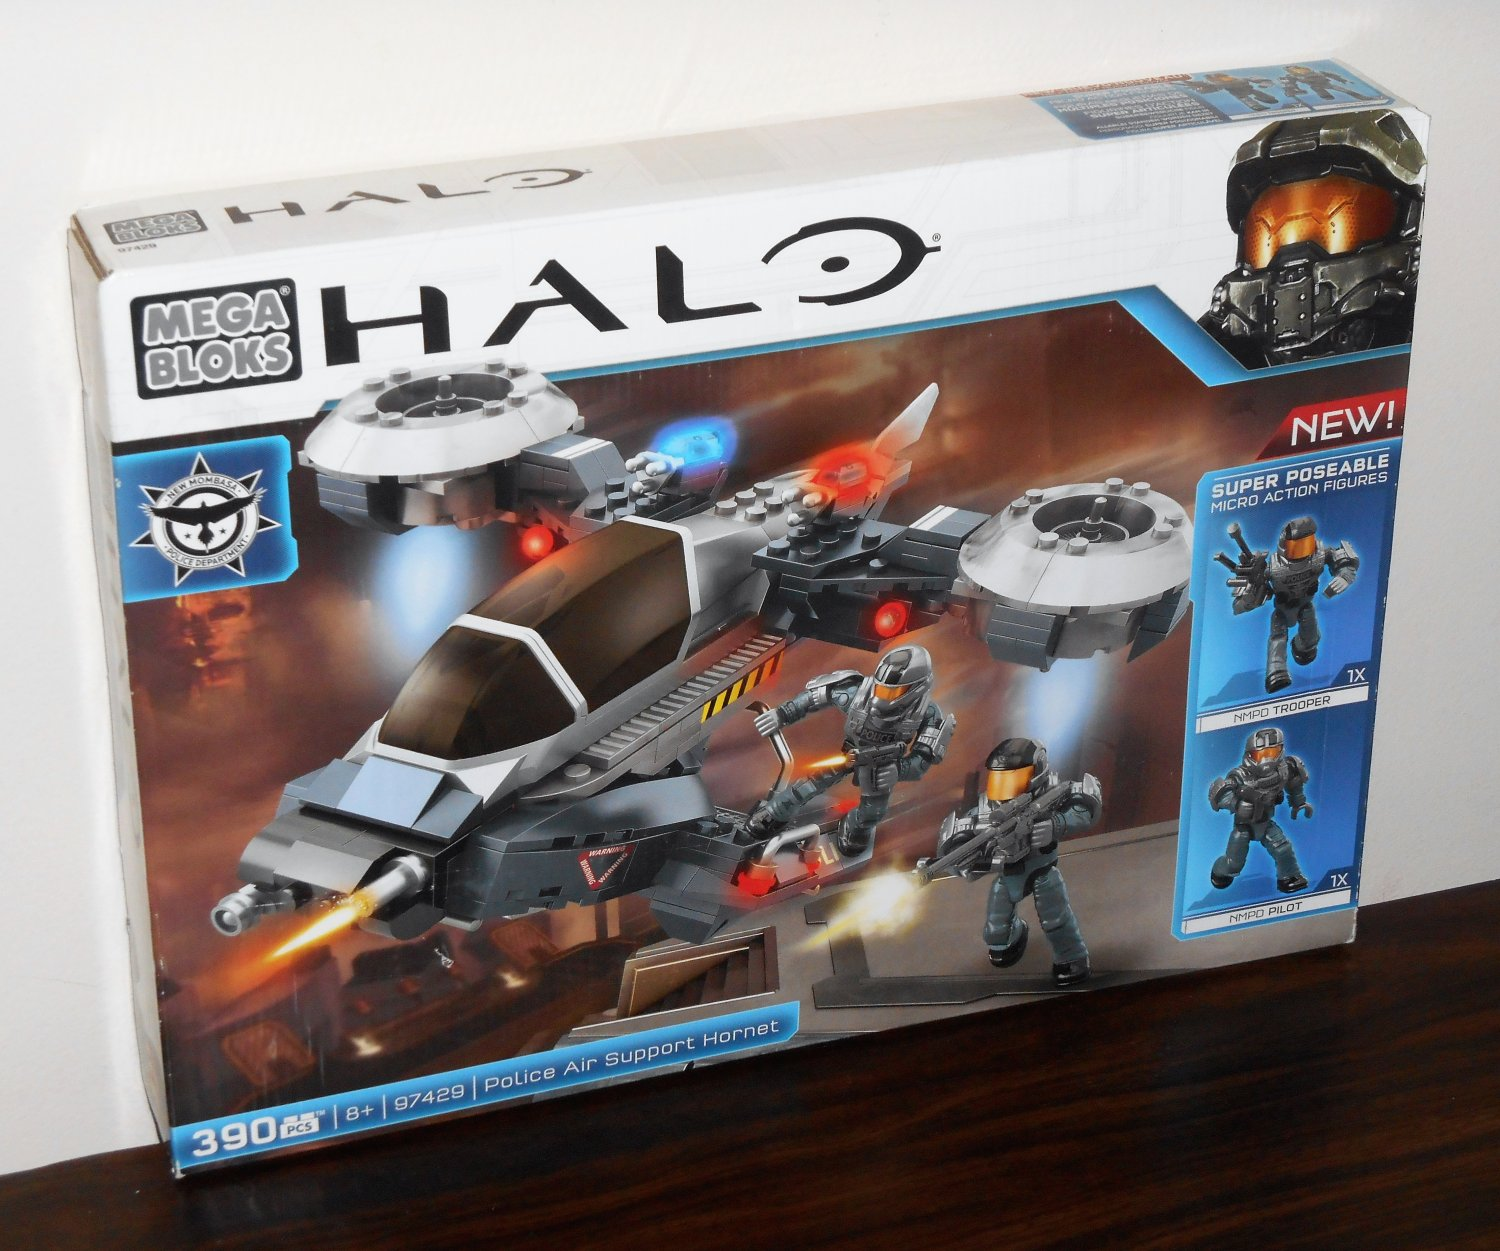 Mega Bloks 97429 Halo Police Air Support Hornet NIB 390 Pieces